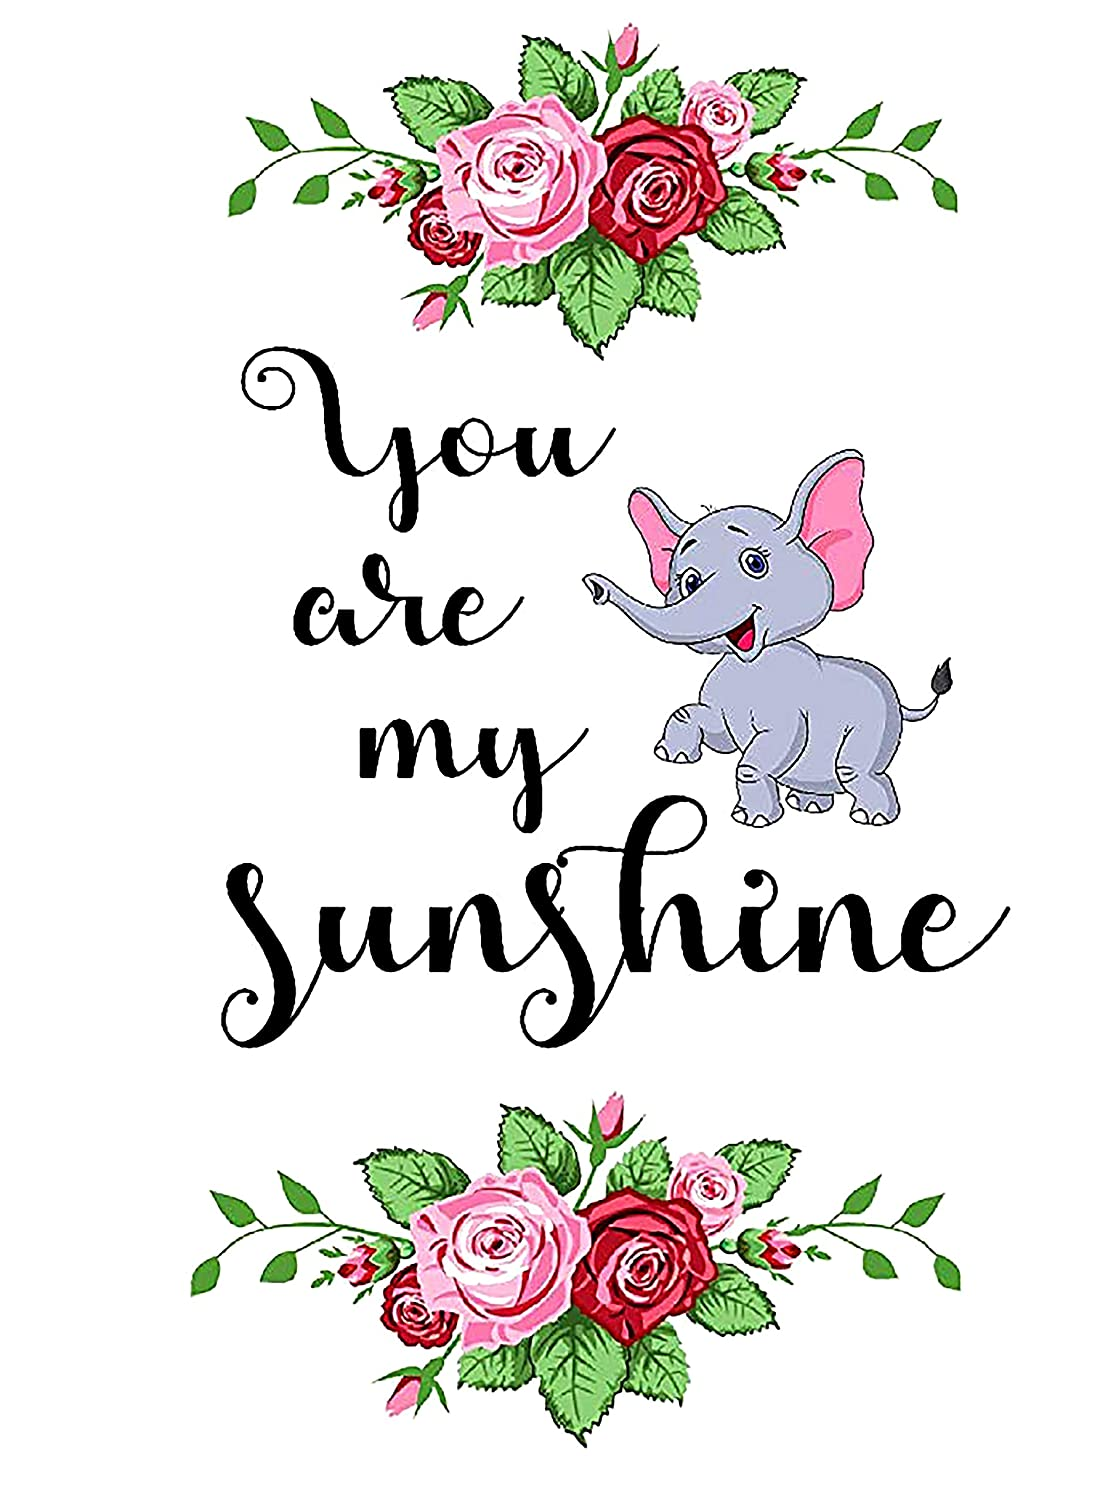 photograph about You Are My Sunshine Printable called Your self Are My Sun - wall body print - Youngsters Wall Artwork - Weighty wall estimate - Quotation Images - Nursery Wall Artwork - My simply just Sunlight - Printable Décor